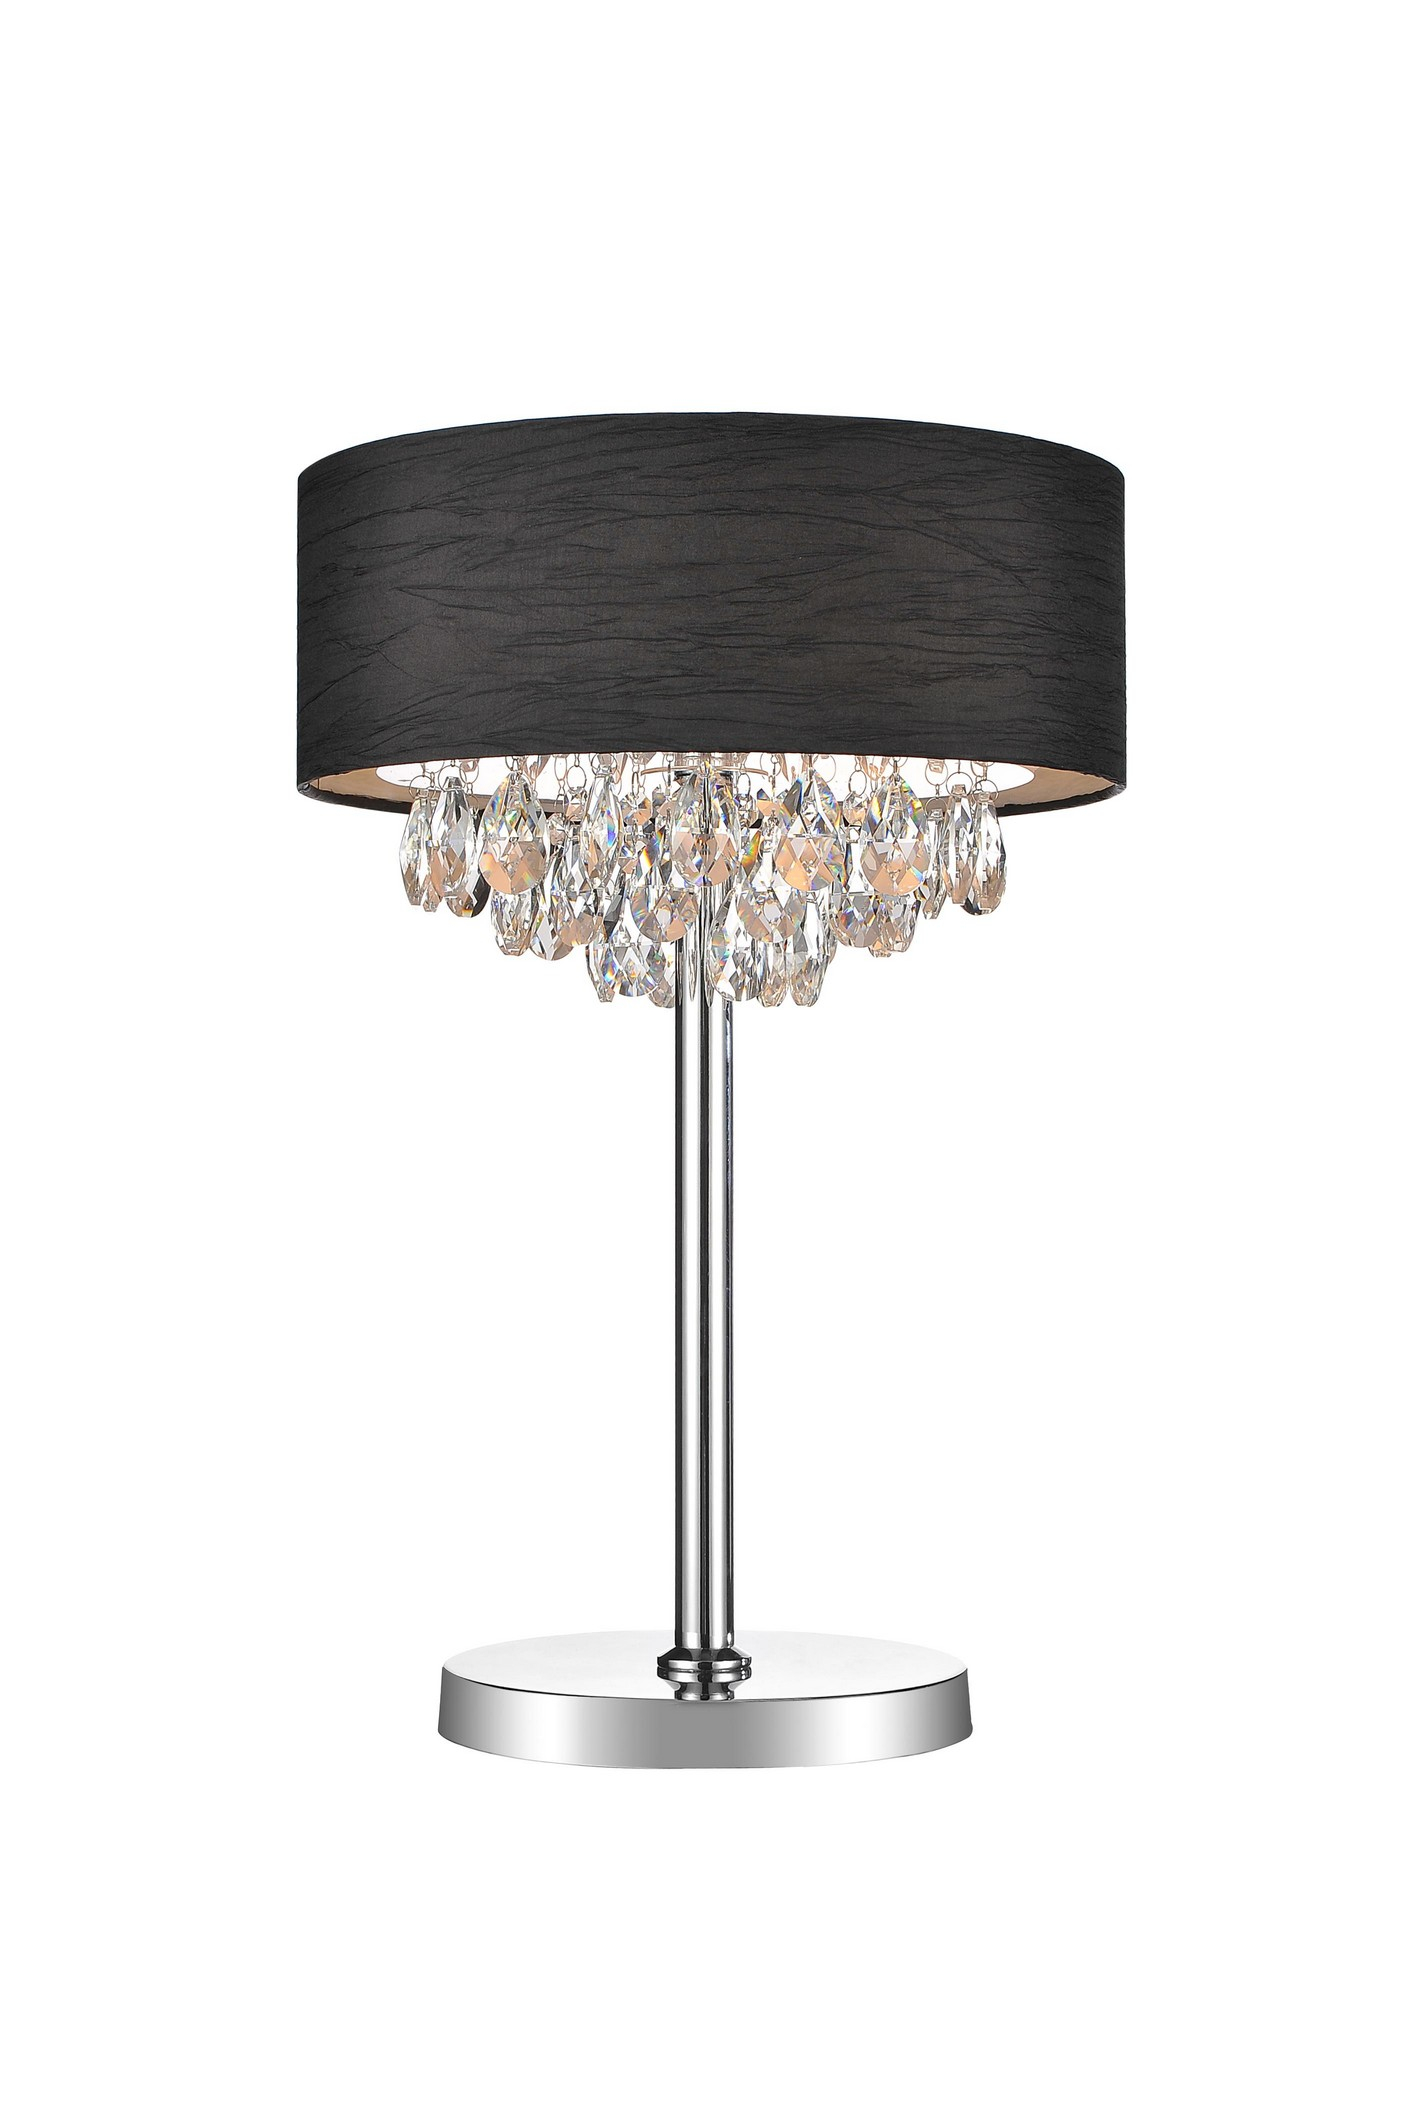 3 Light Table Lamp with Chrome finish